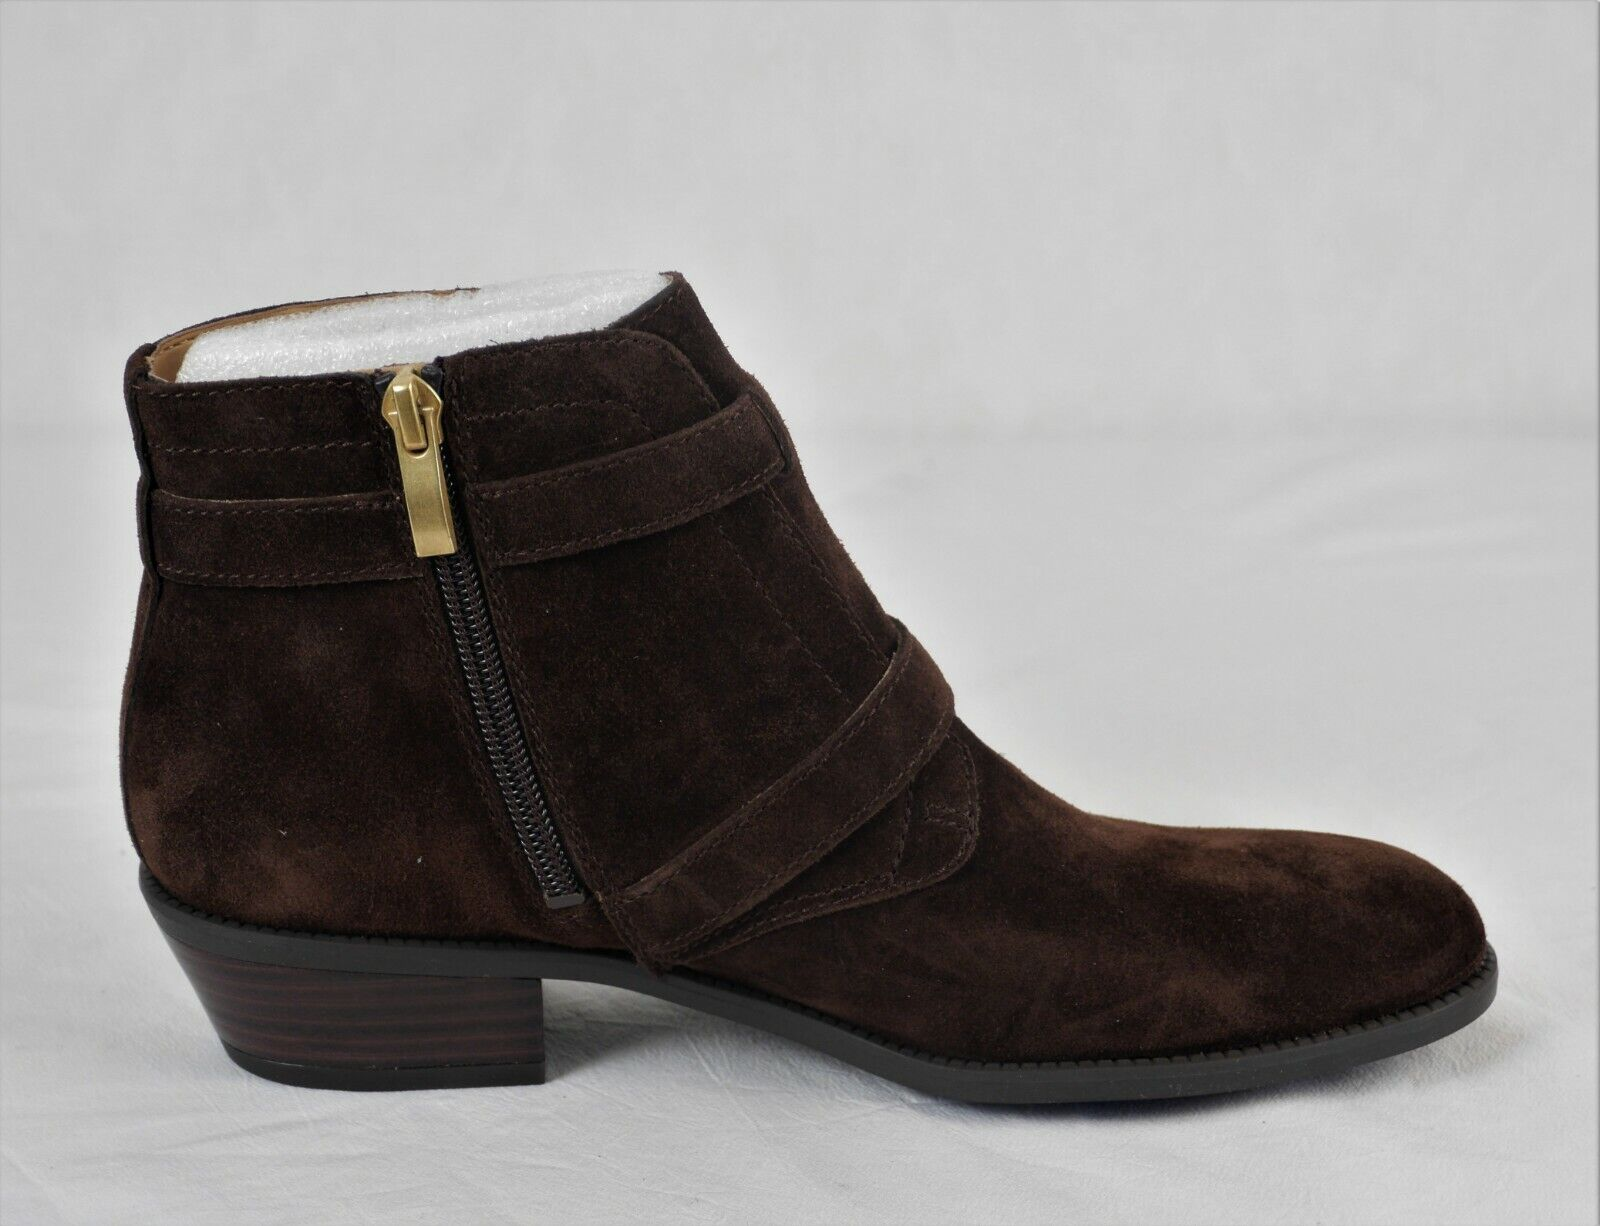 Franco Sarto Suede Ankle Boots Buckle Rynn Java 6M New